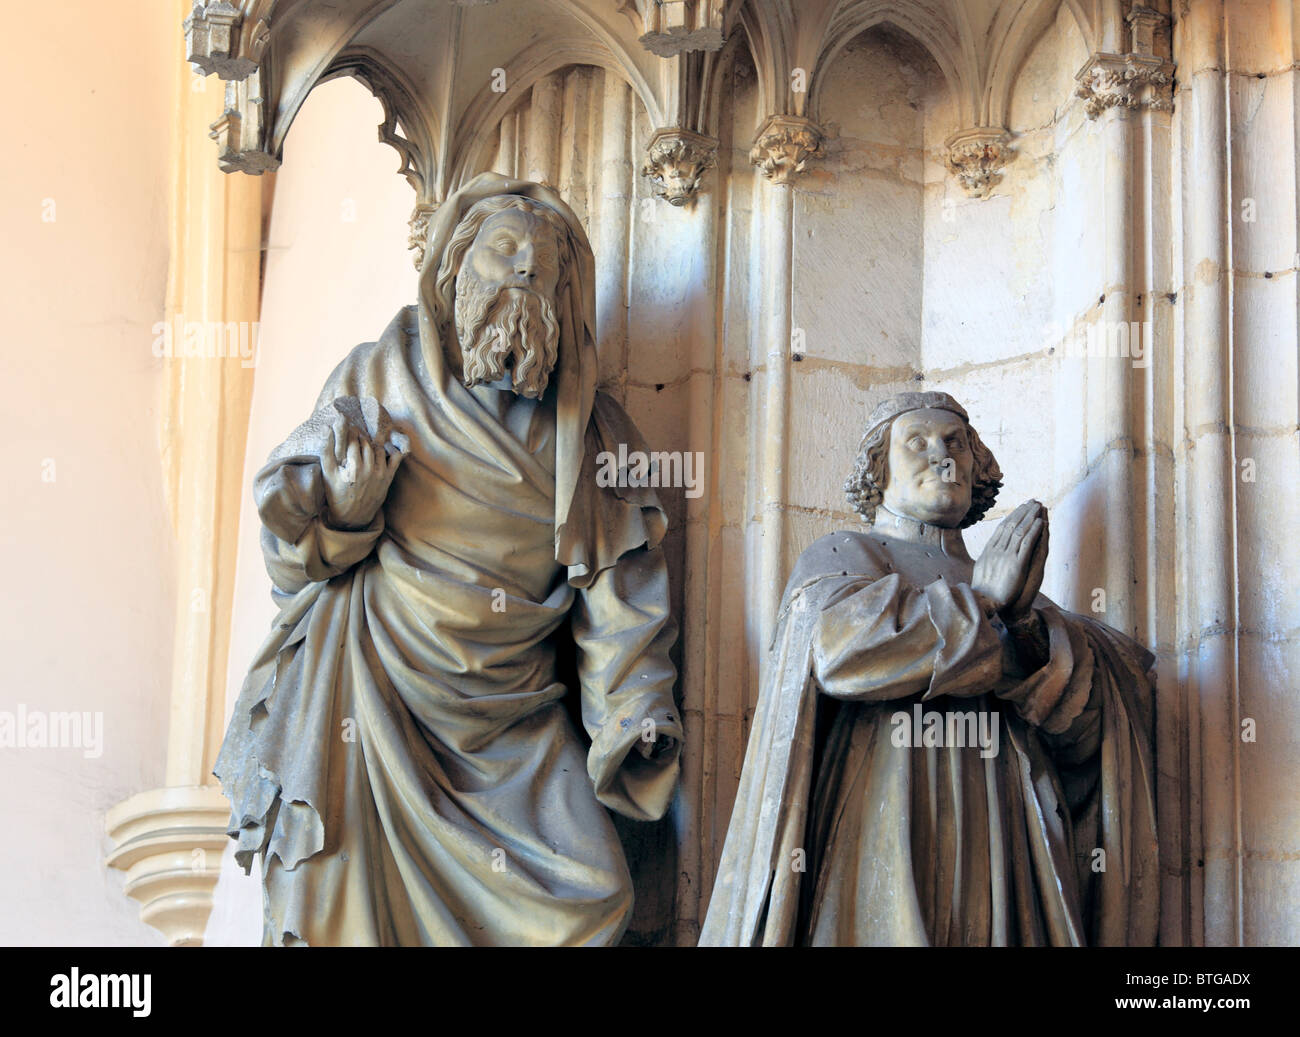 Portal of monastery church in Chartreuse de Champmol with sculpture by Claus Sluter, Côte-d'Or departement, - Stock Image